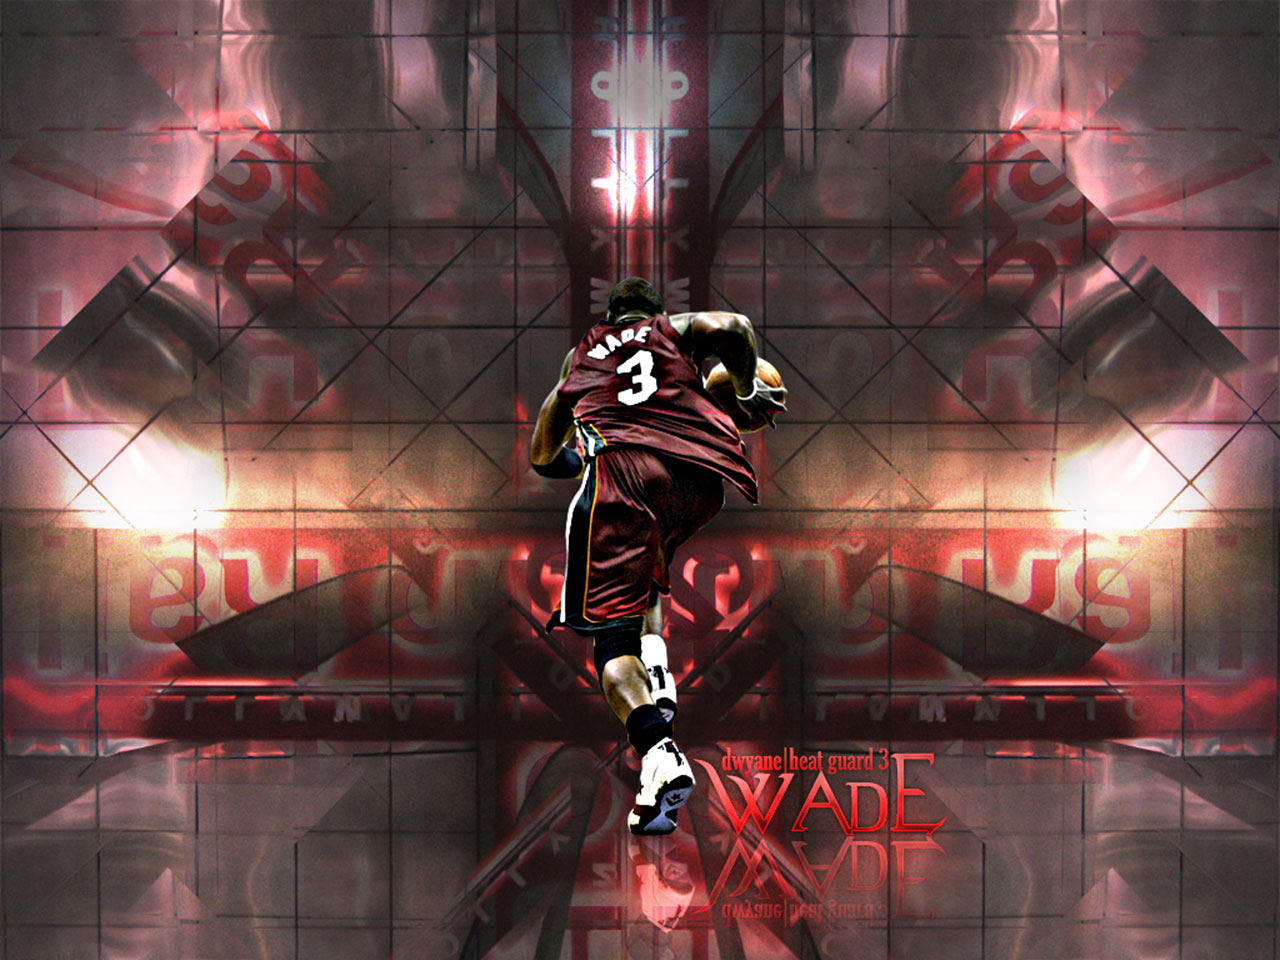 DWYANE WADE Michael Jordan Wallpaper Dunk For Android DWYANE WADE 1280x960